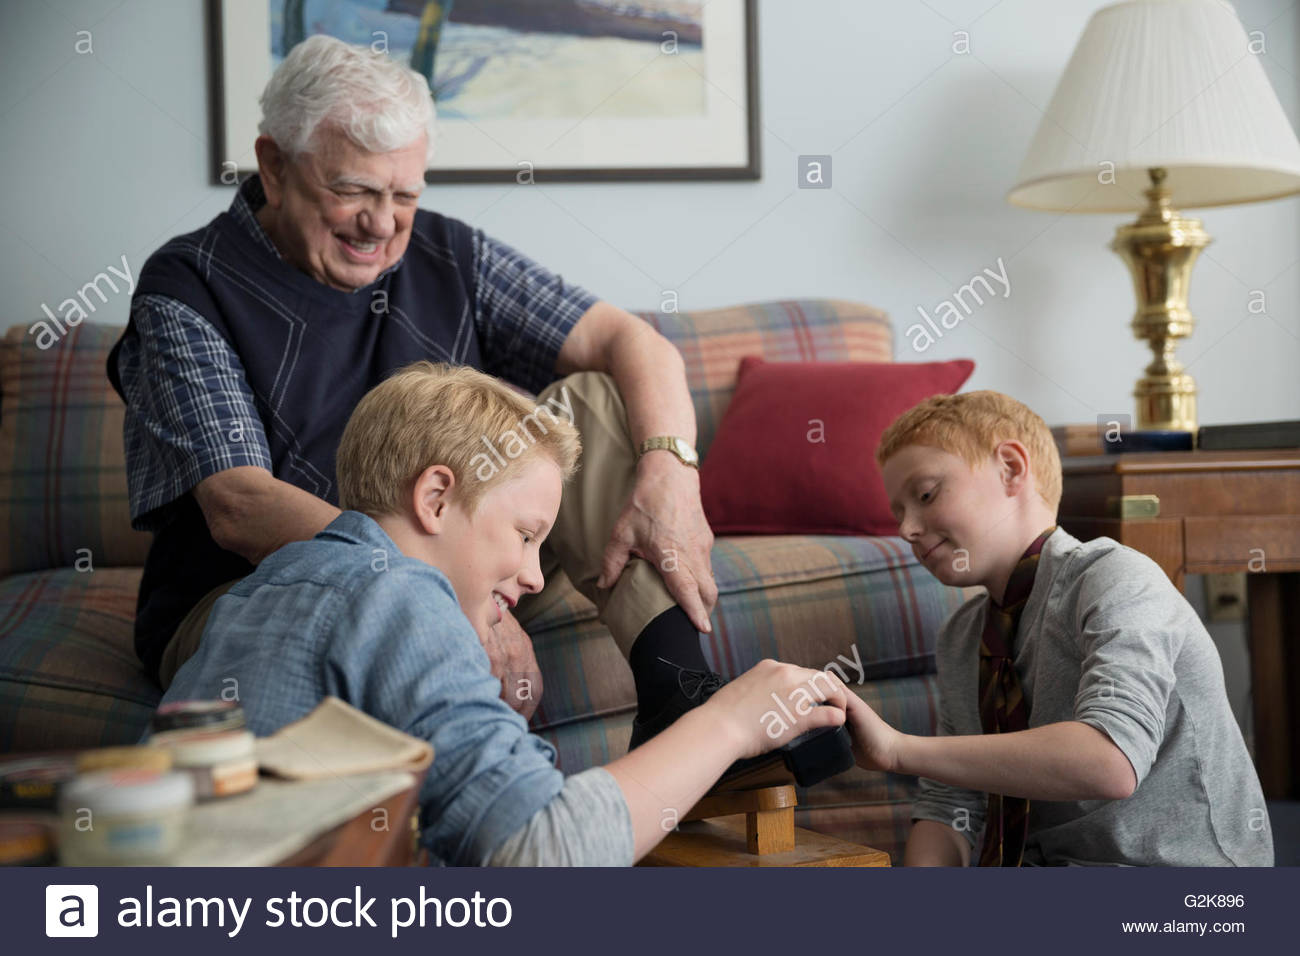 Grandsons polishing shoes for grandfather in living room - Stock Image